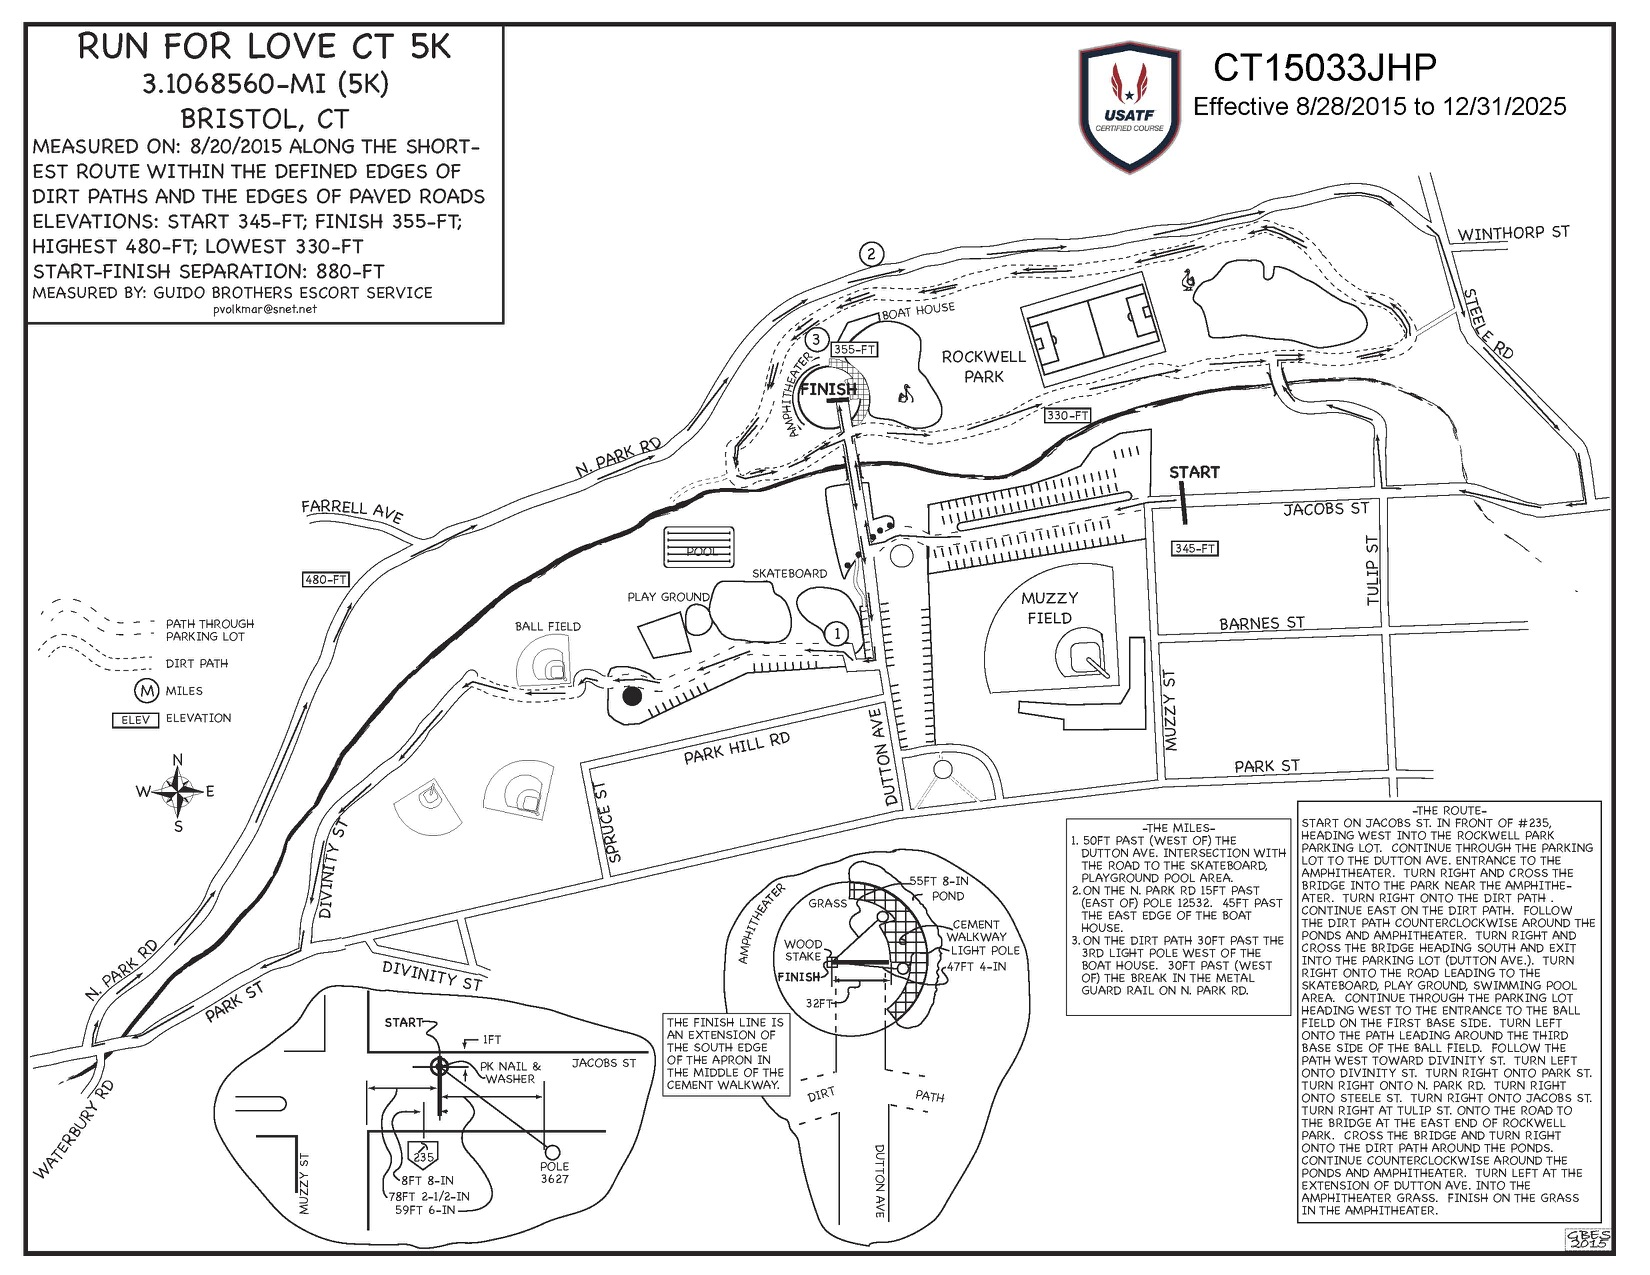 This is the Certified official race map. If you have any questions regarding the course please feel free to contact us via events@hillsidebristol.org.